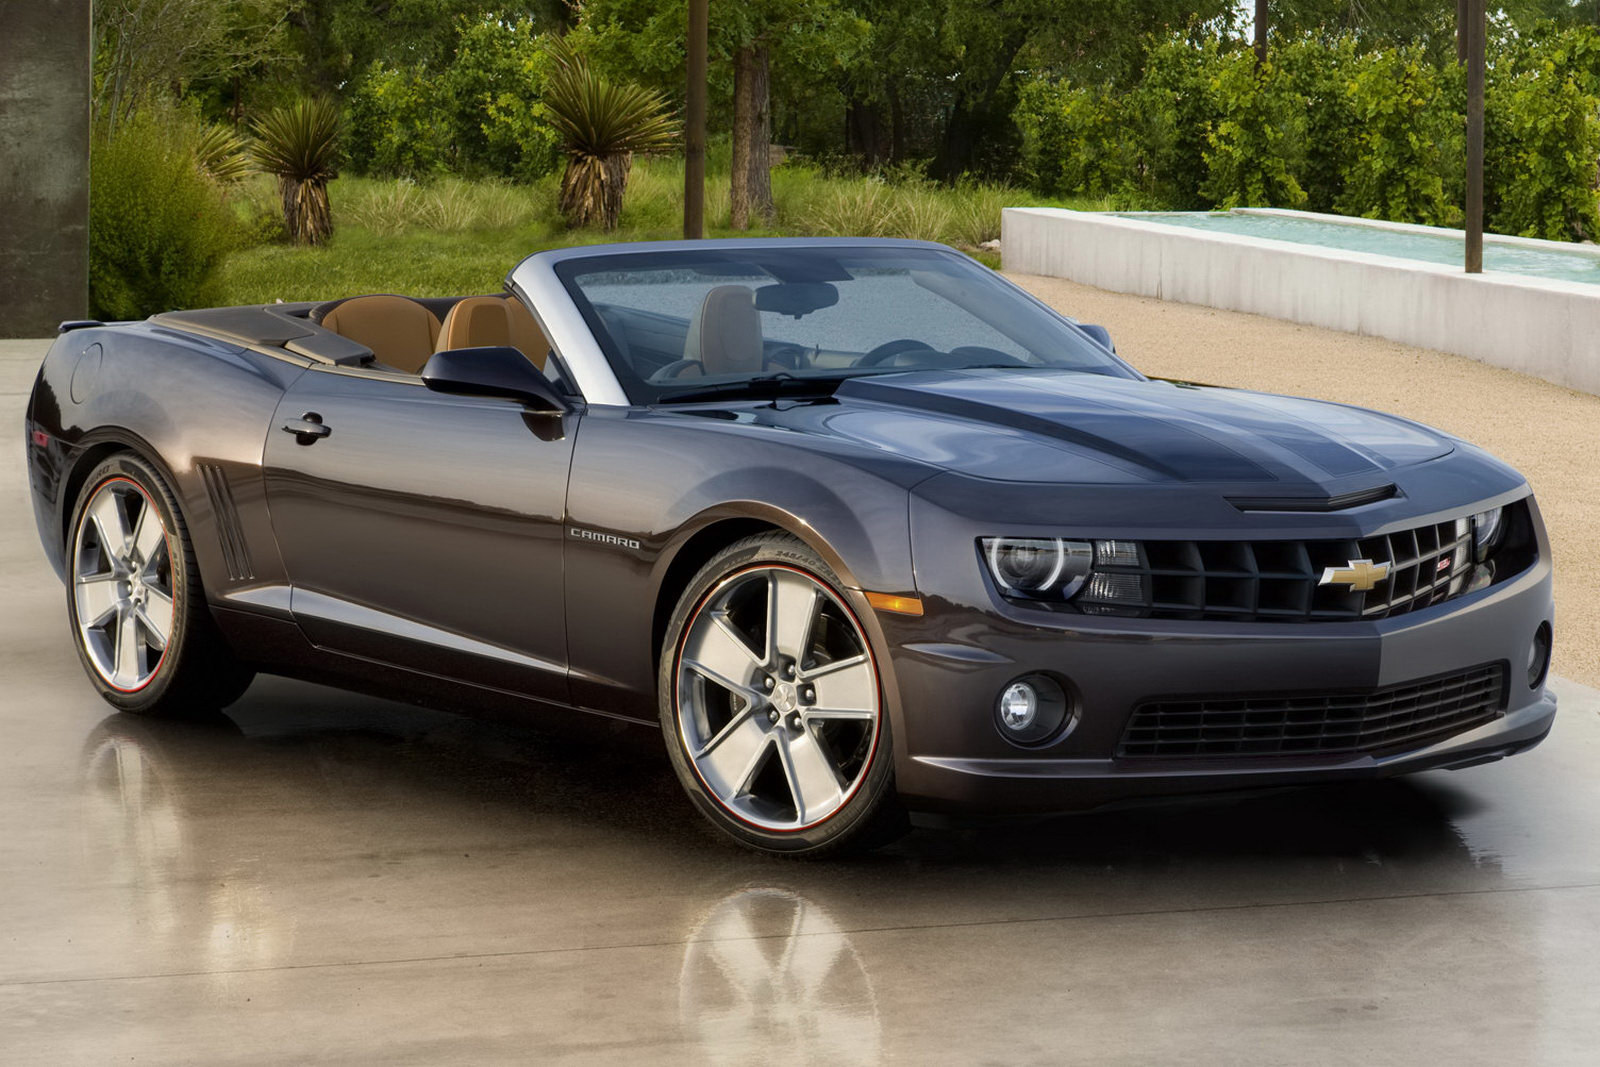 chevrolet camaro convertible goes to super bowl xlv mvp extravaganzi. Black Bedroom Furniture Sets. Home Design Ideas